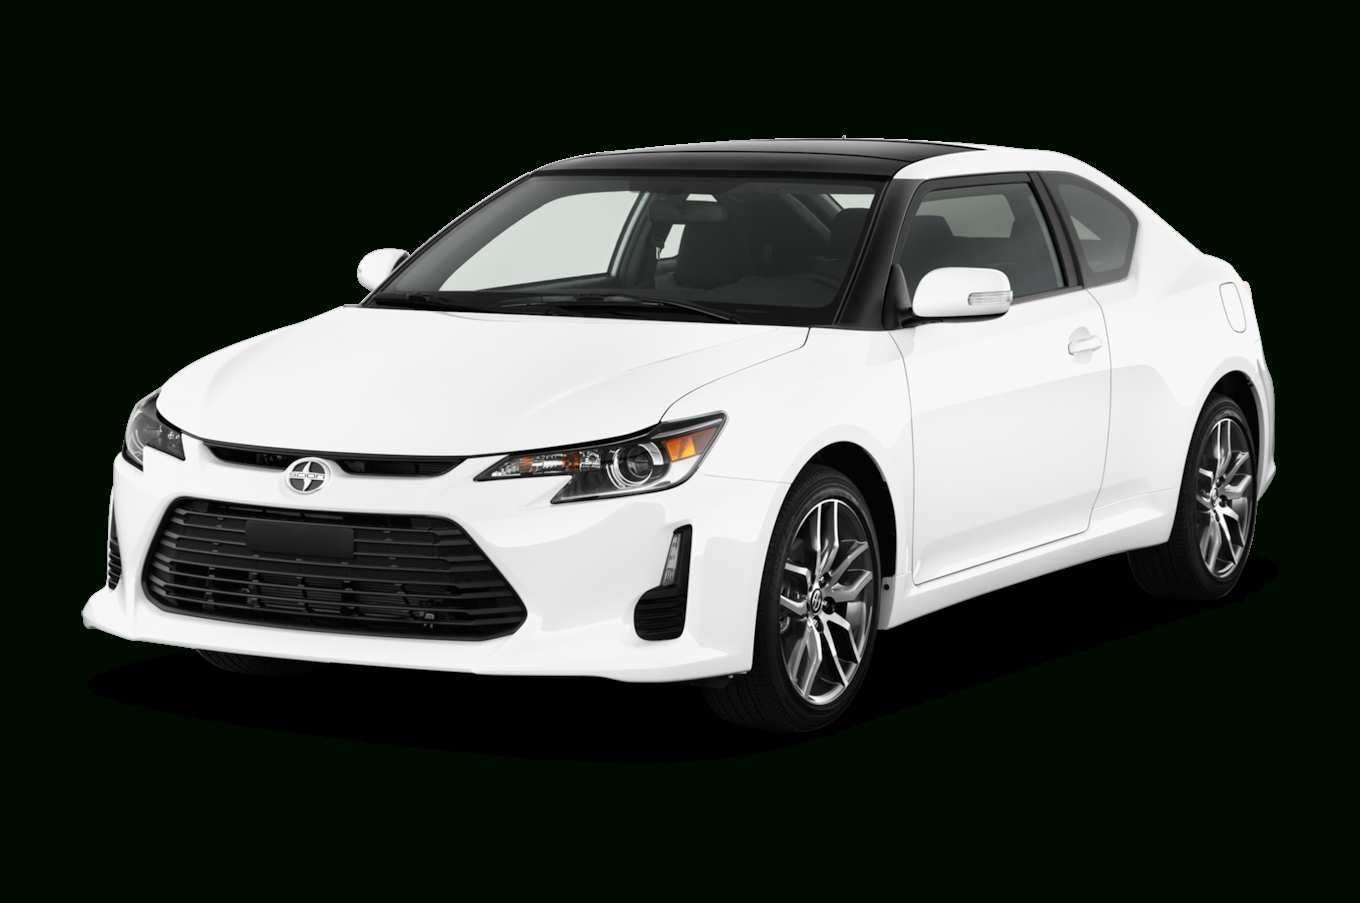 25 New Scion Tc 2020 Release Date for Scion Tc 2020